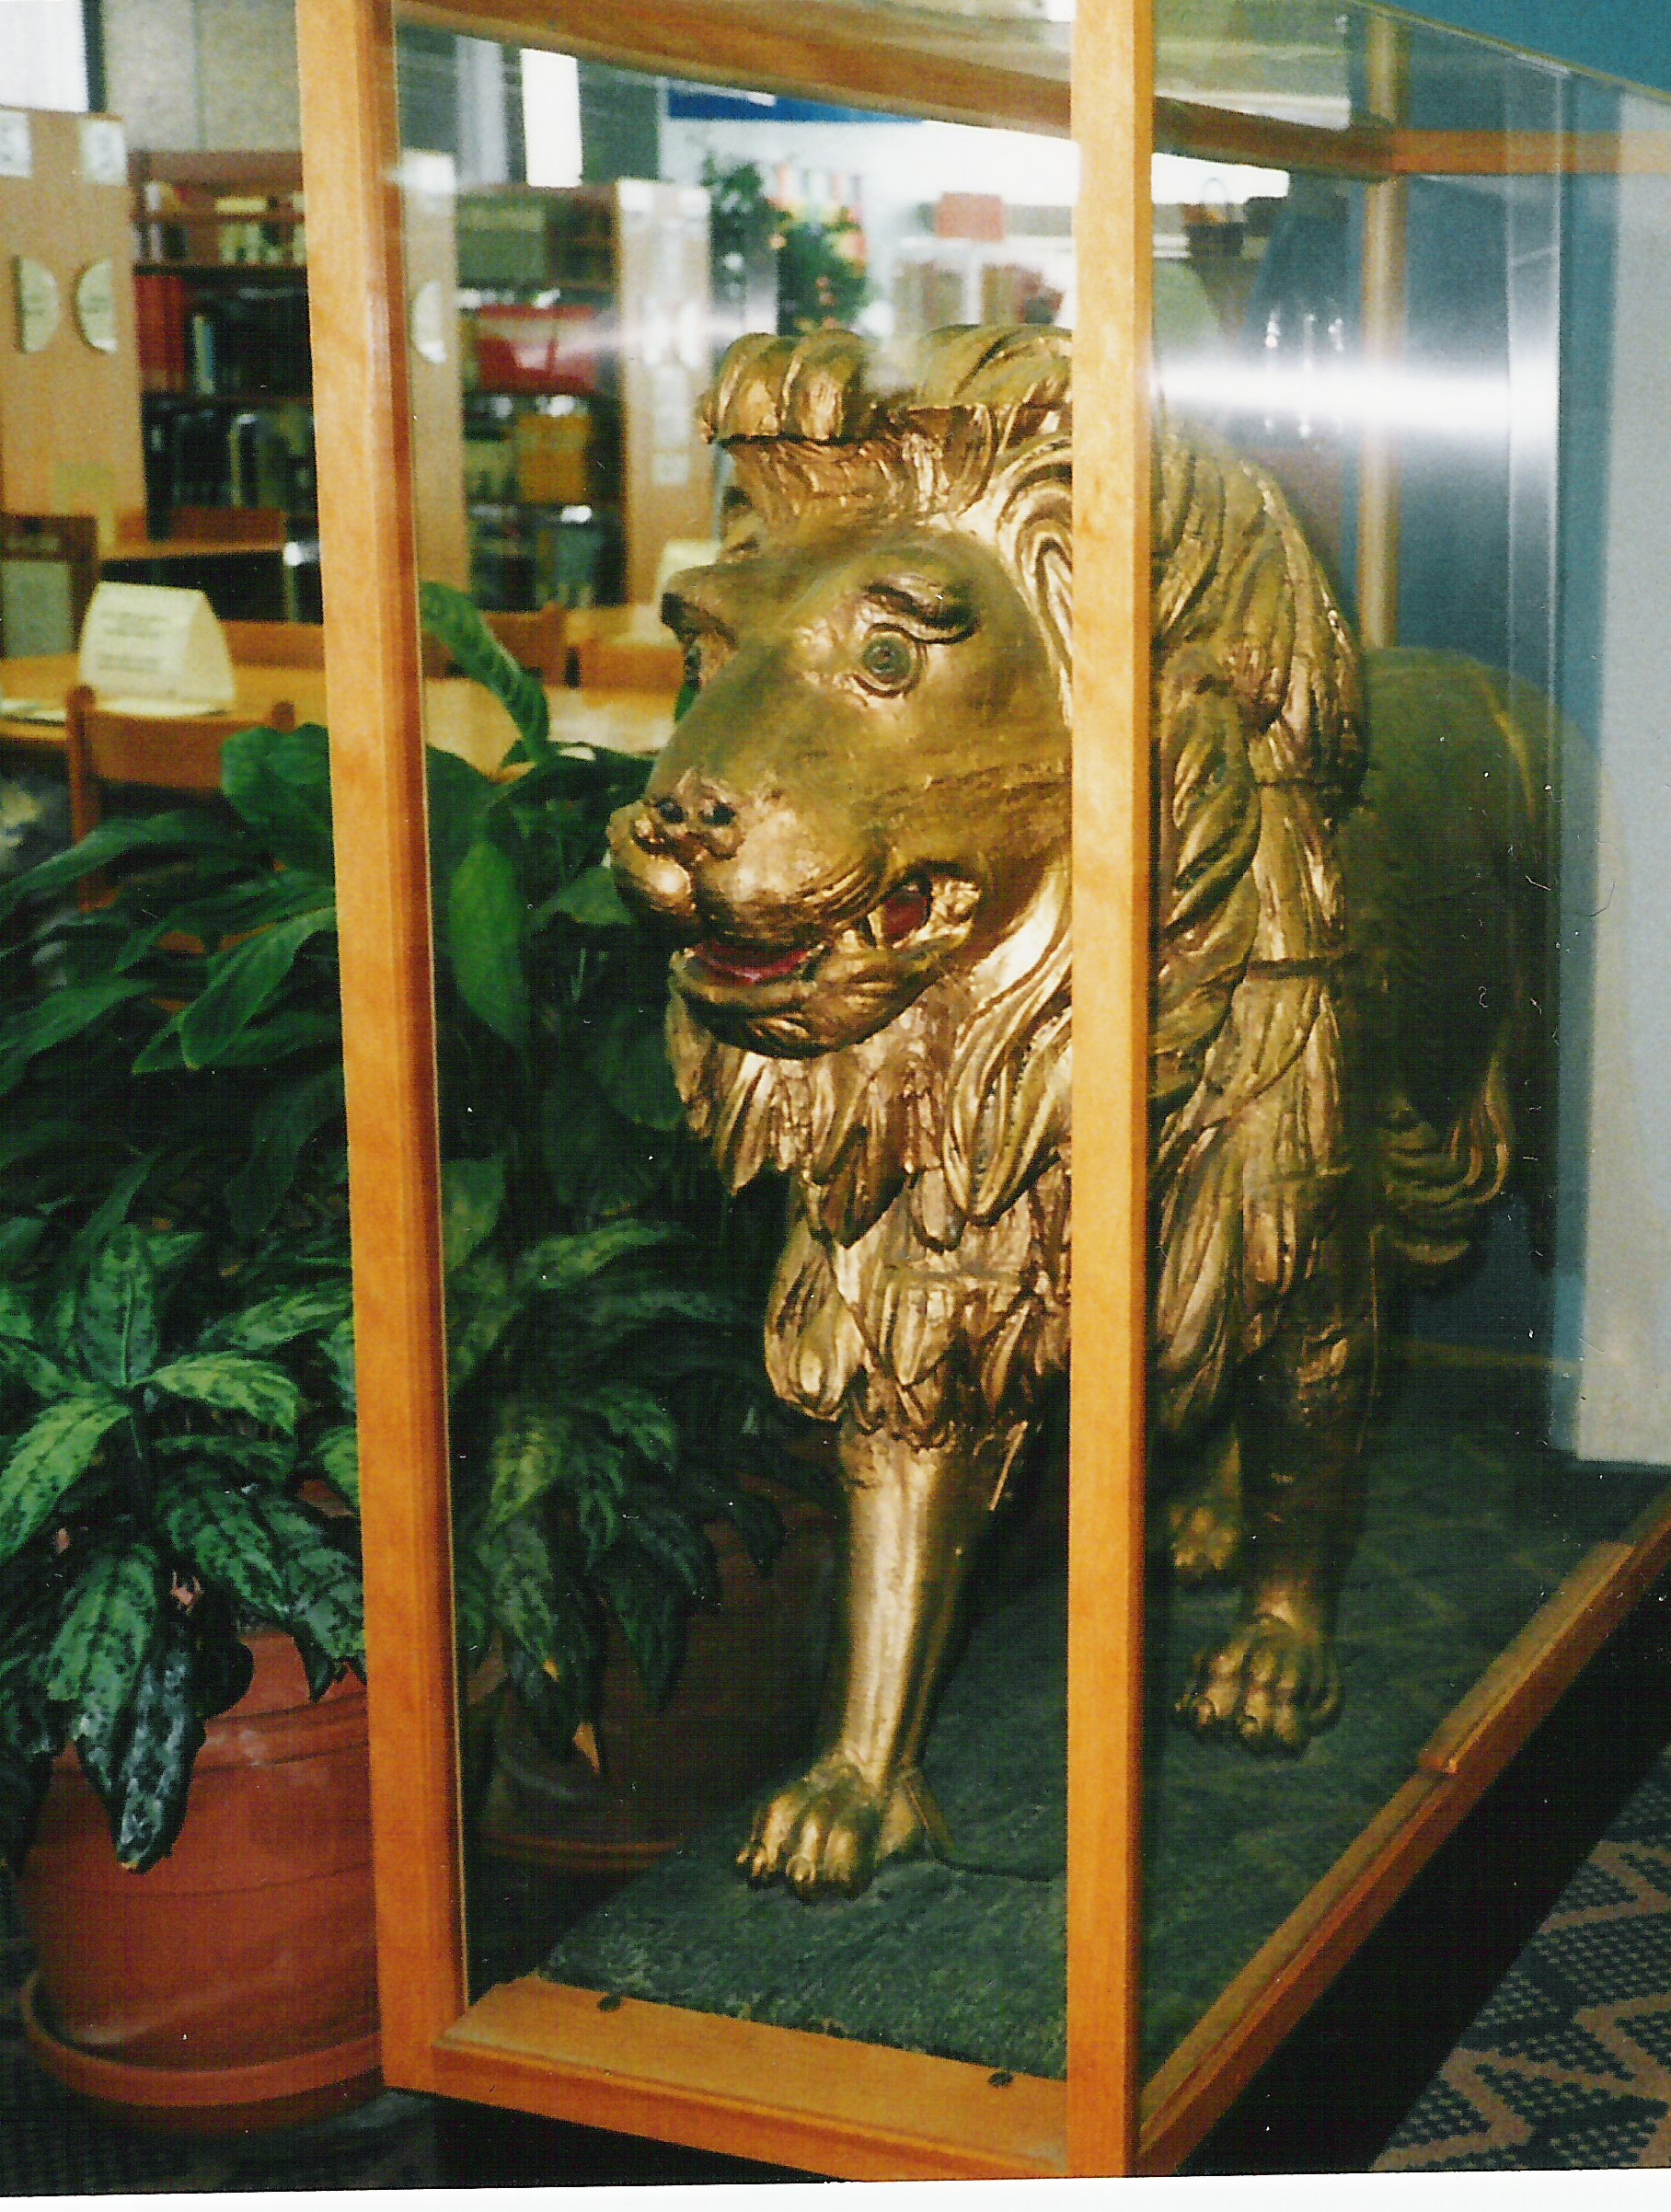 Golden Lion on display in North York Library